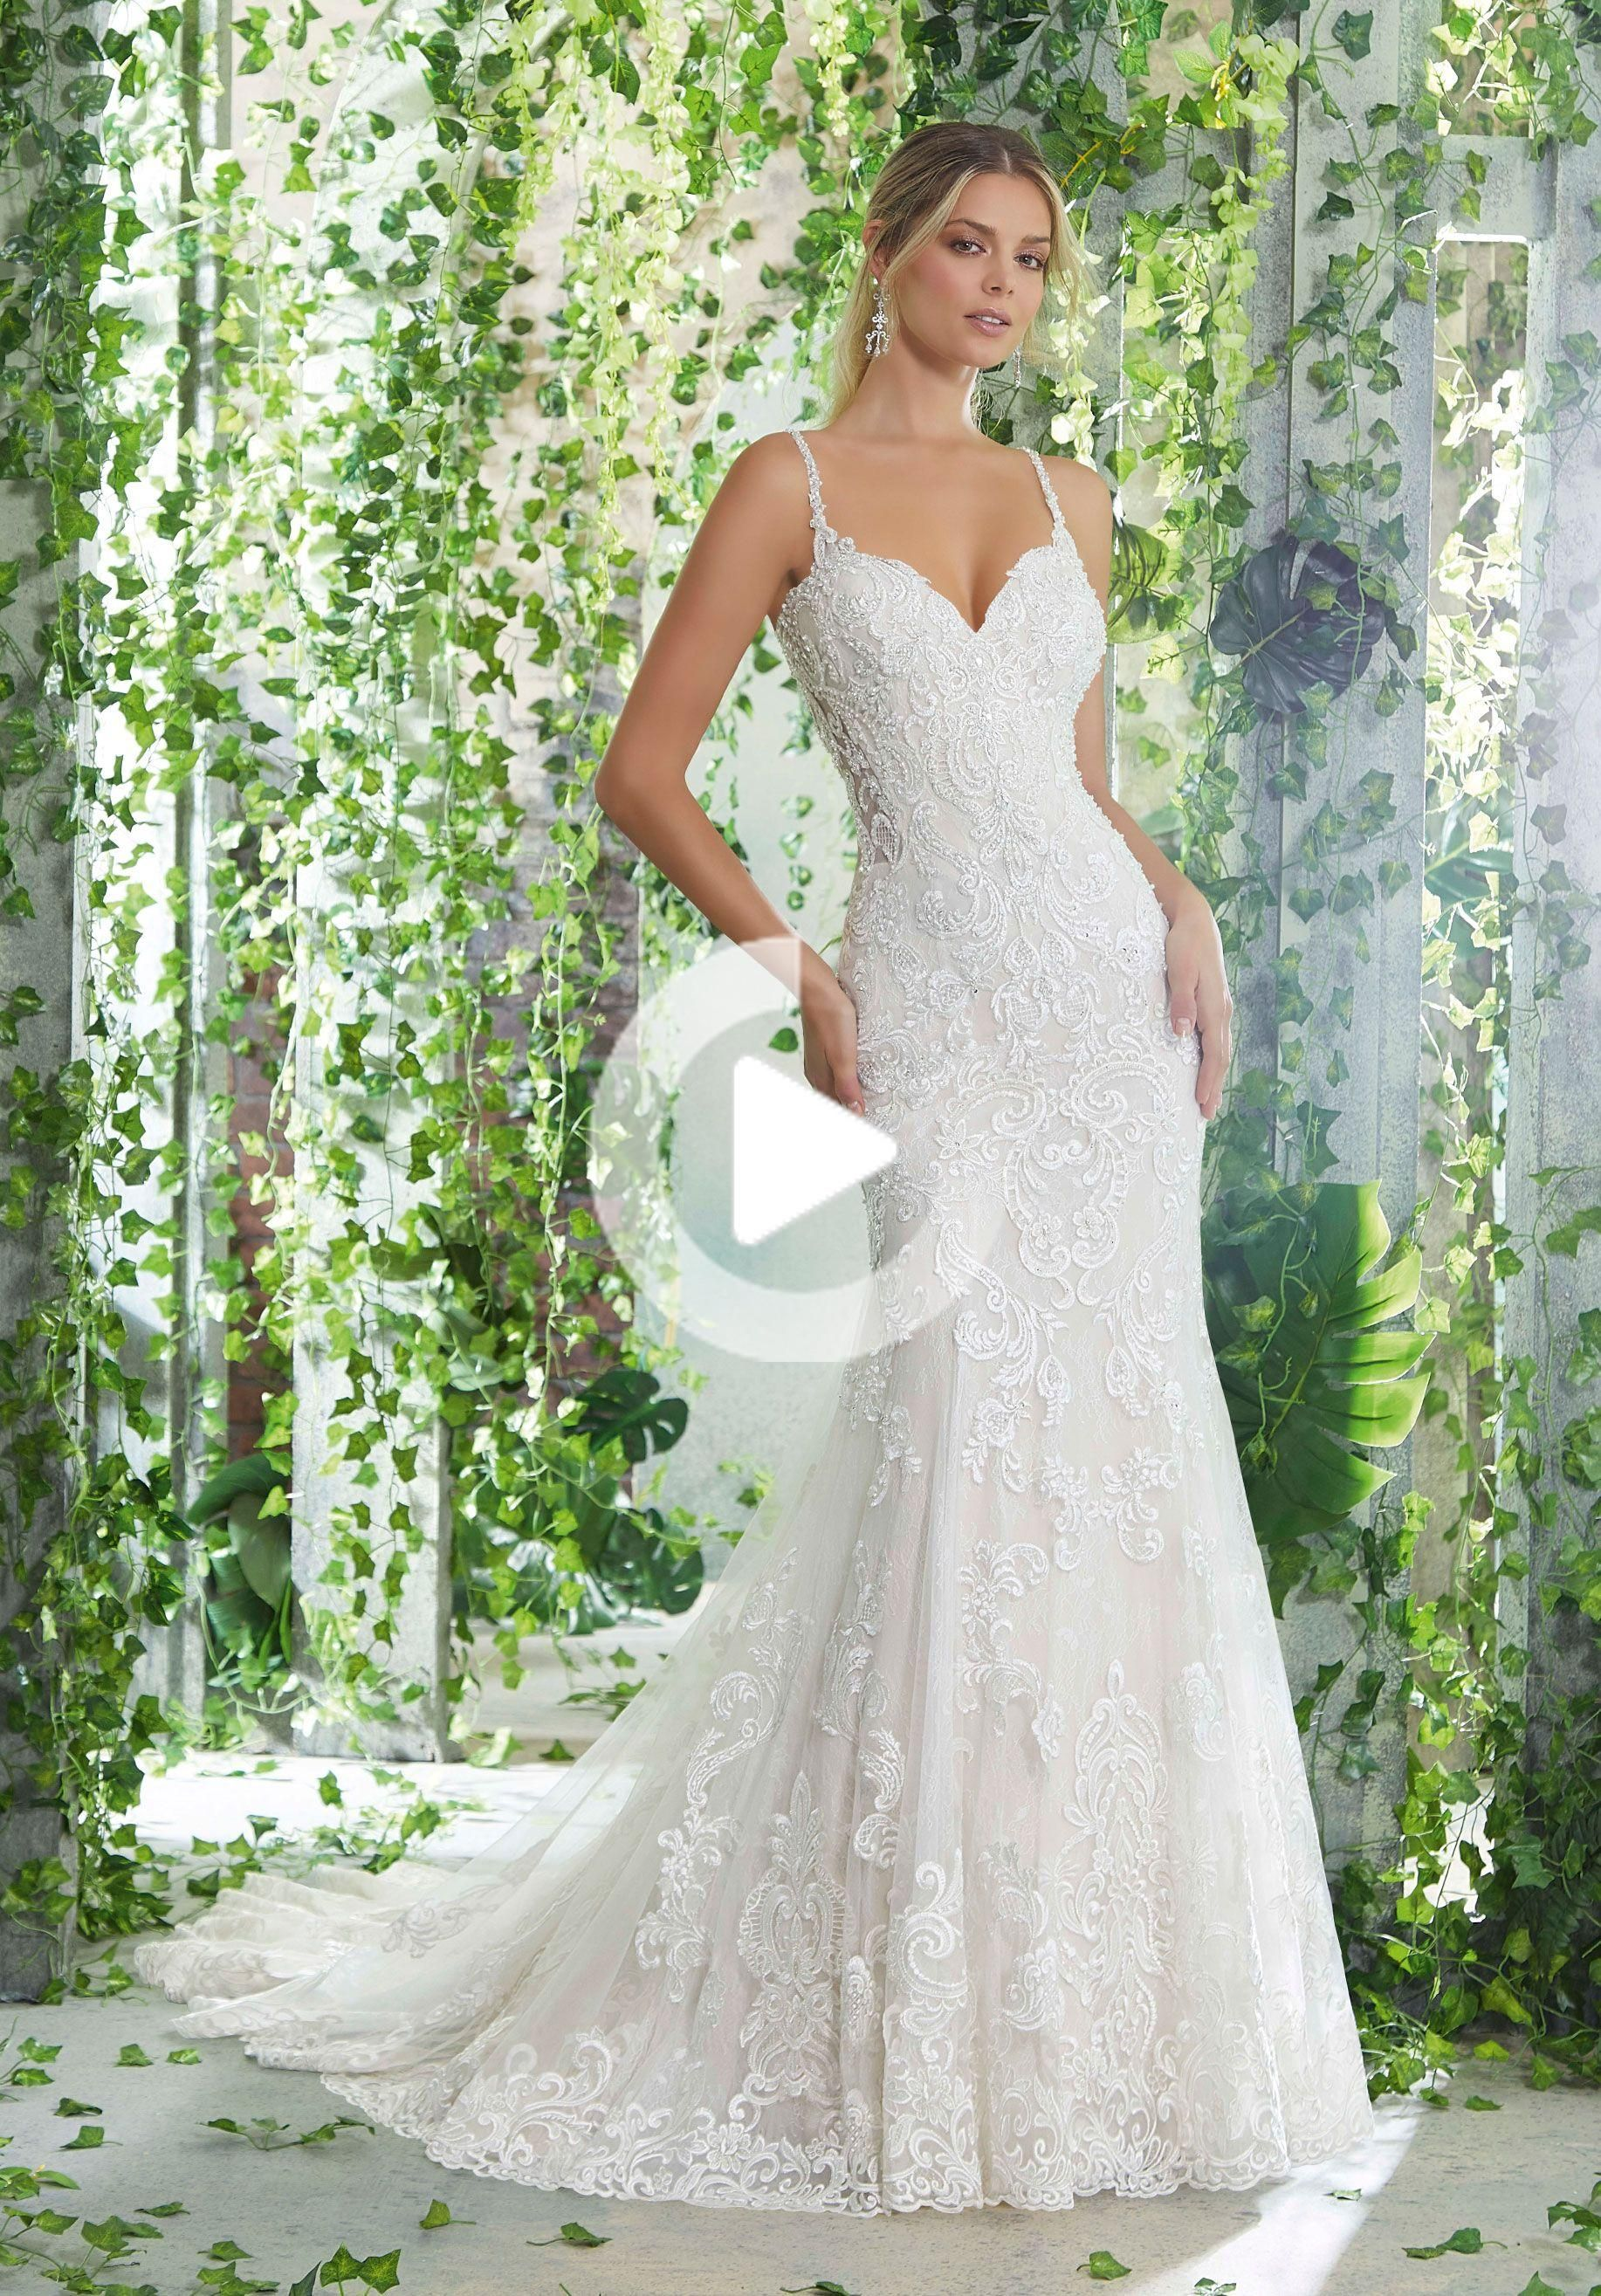 Morilee | Madeline Gardner, Pallas Style 1727 | Crystal Beaded Straps and Embroidered Appliqués on a...